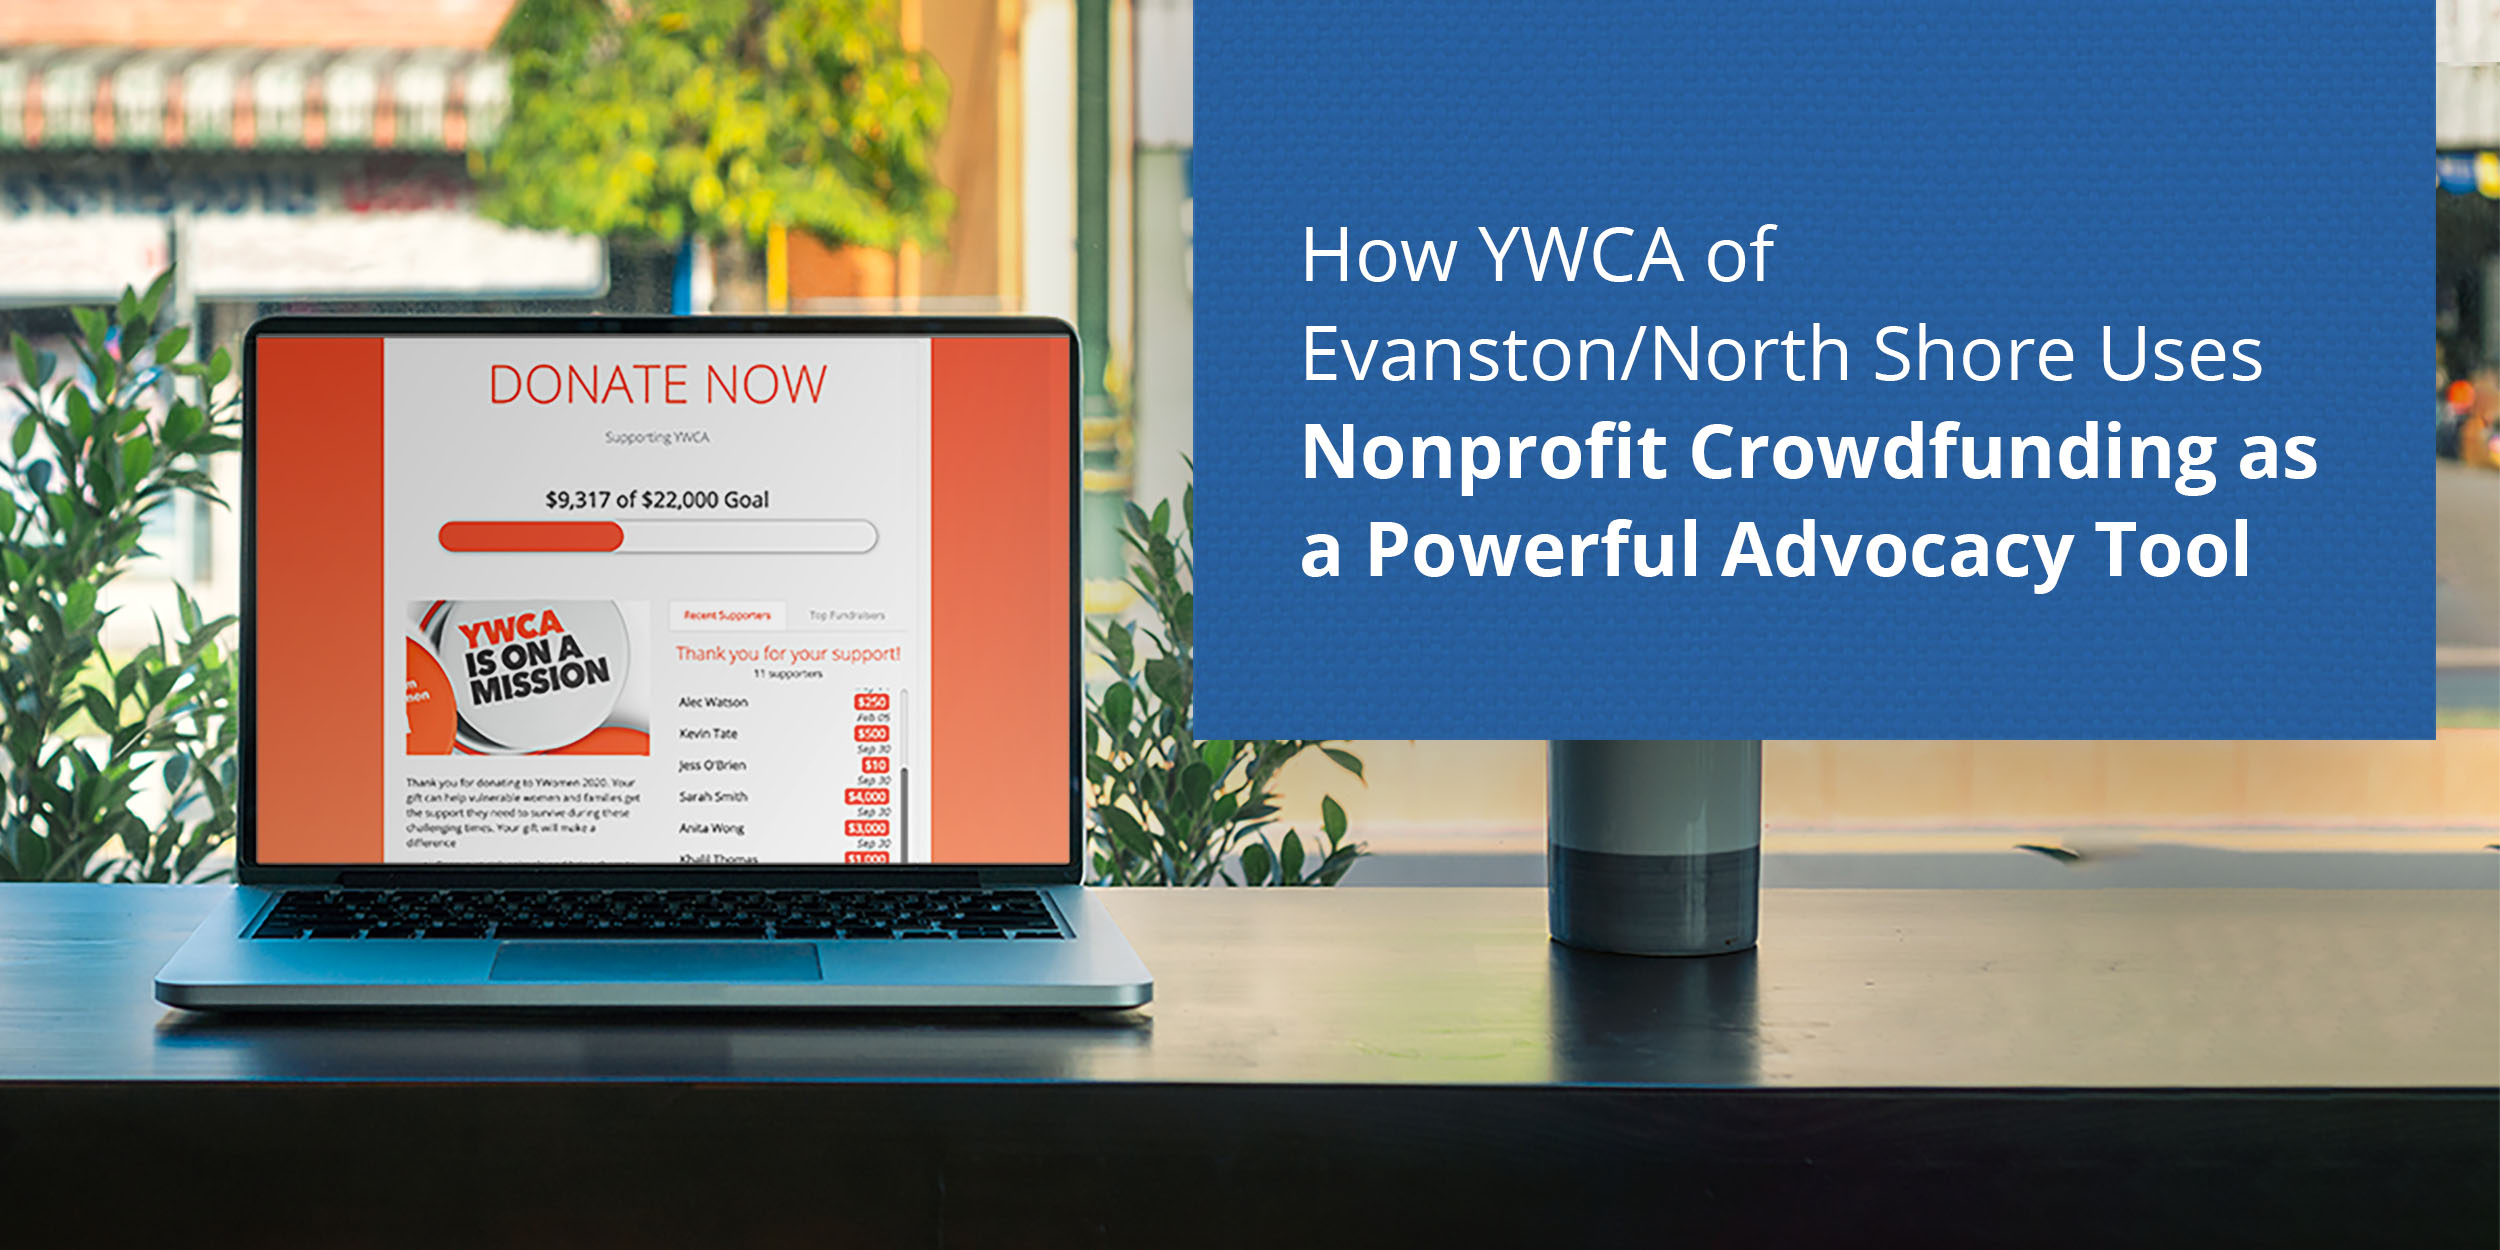 How YWCA of Evanston/North Shore Uses Nonprofit Crowdfunding as a Powerful Advocacy Tool